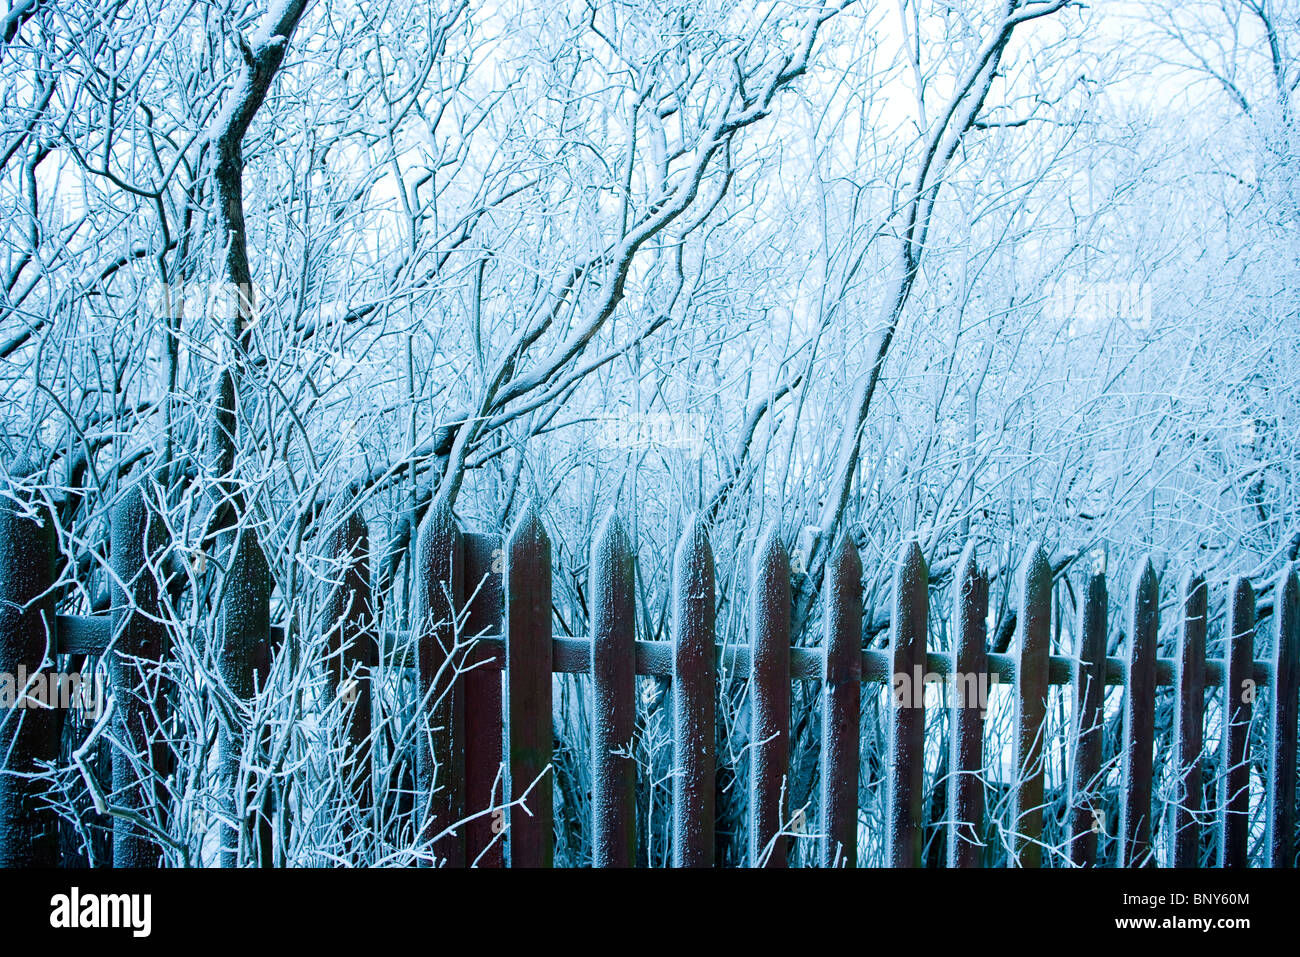 Wooden fence and trees dusted with snow - Stock Image